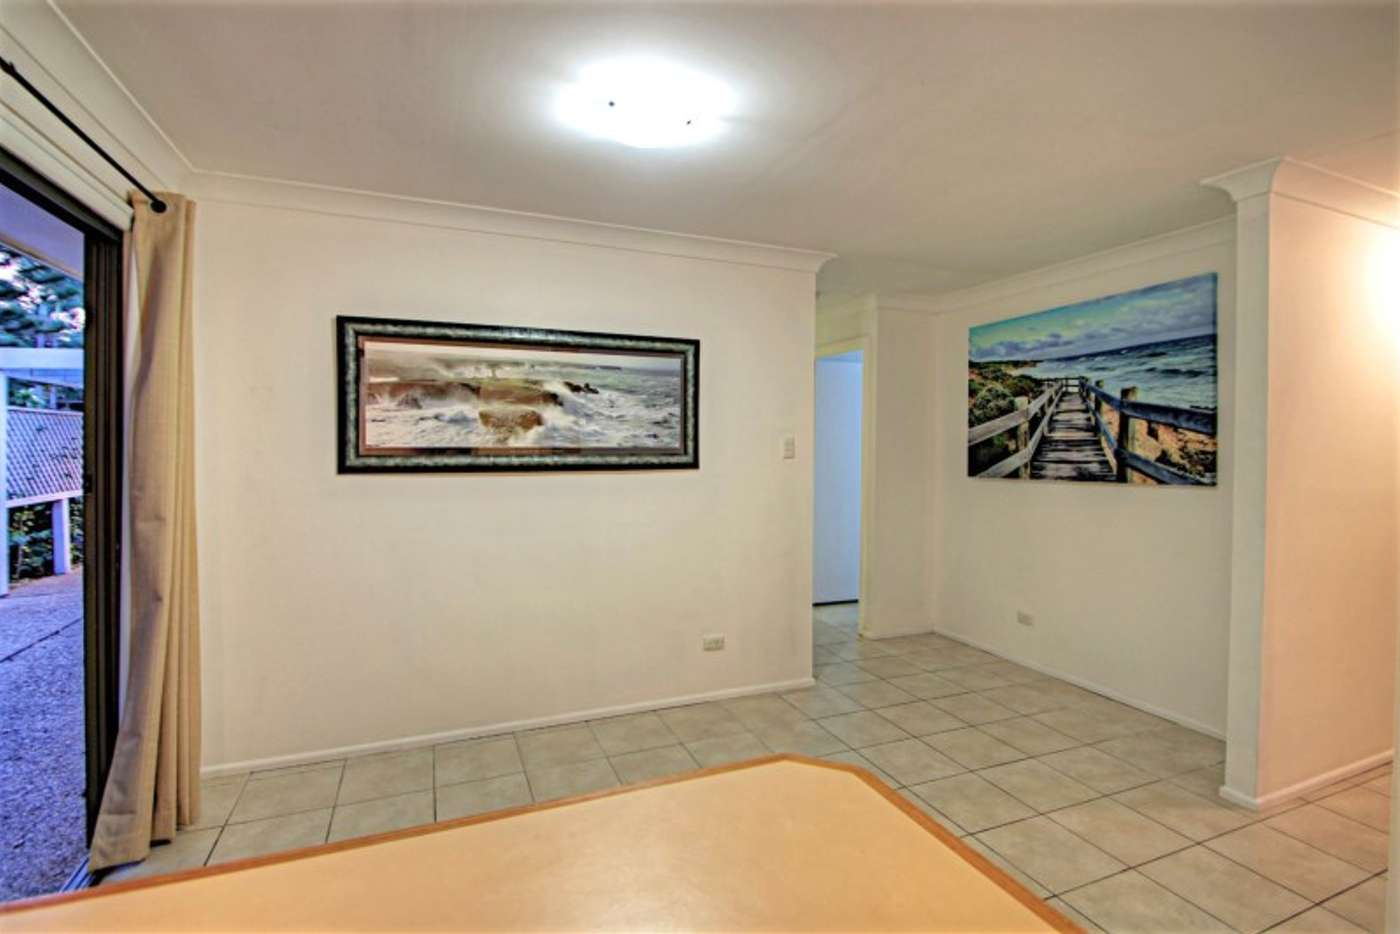 Sixth view of Homely house listing, 30 Carinya Crescent, Karana Downs QLD 4306